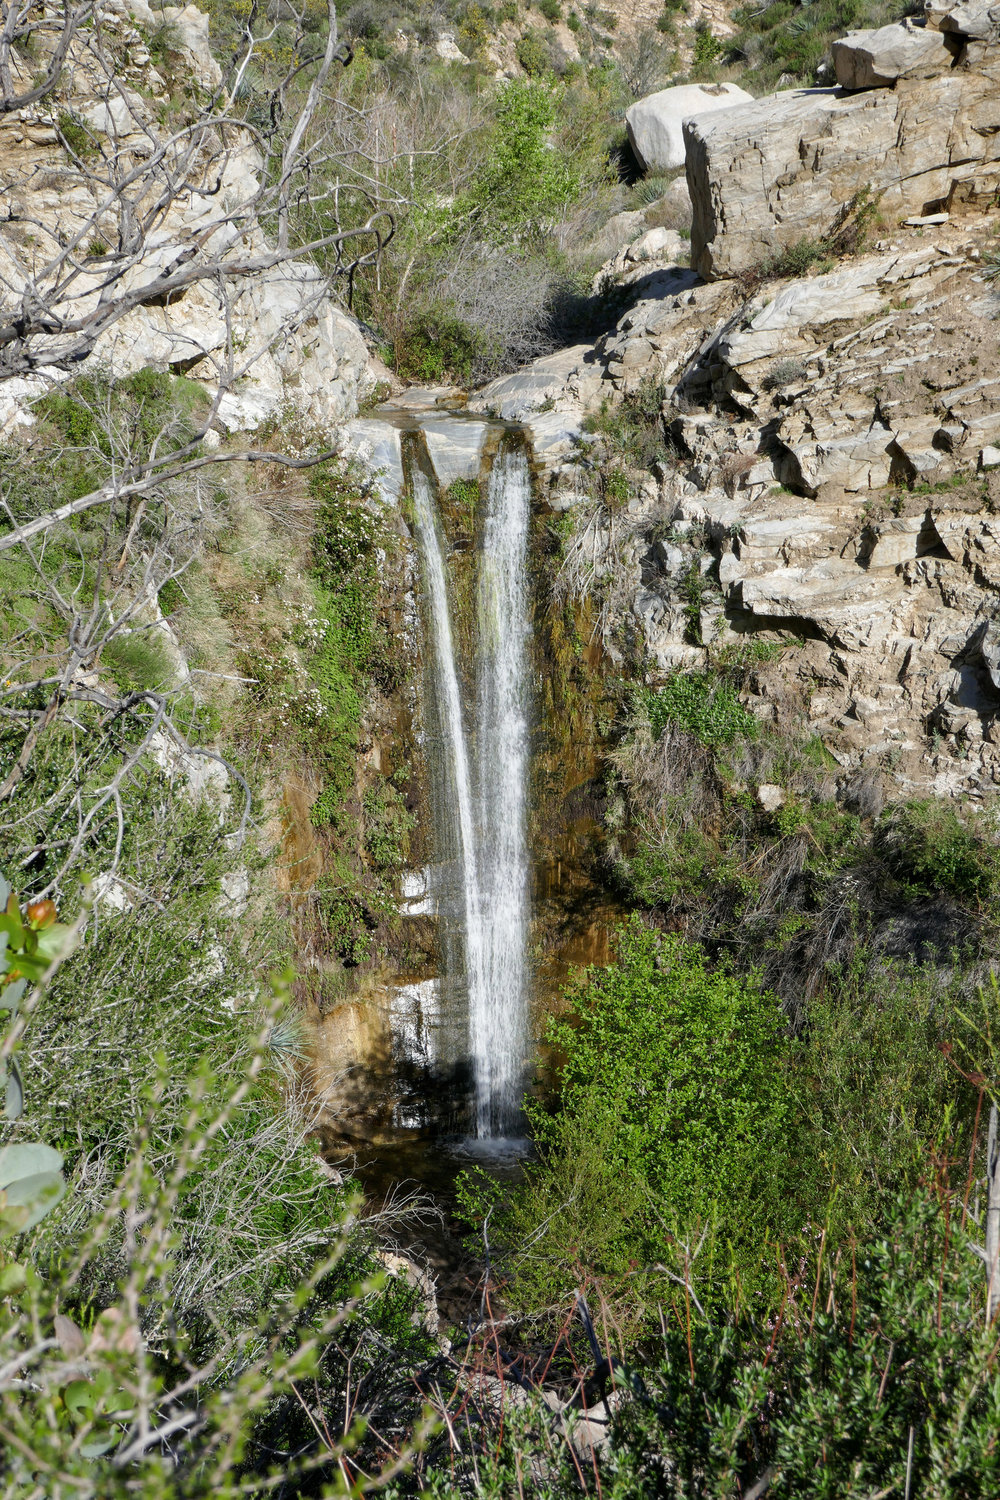 There are great views from here too, but if you continue on the path you'll find a rope tied to a tree and you can scramble down about 10 to 15 feet. From there just follow the path and you'll be at the base of the falls. It's pretty easy as long as you have some level of fitness.